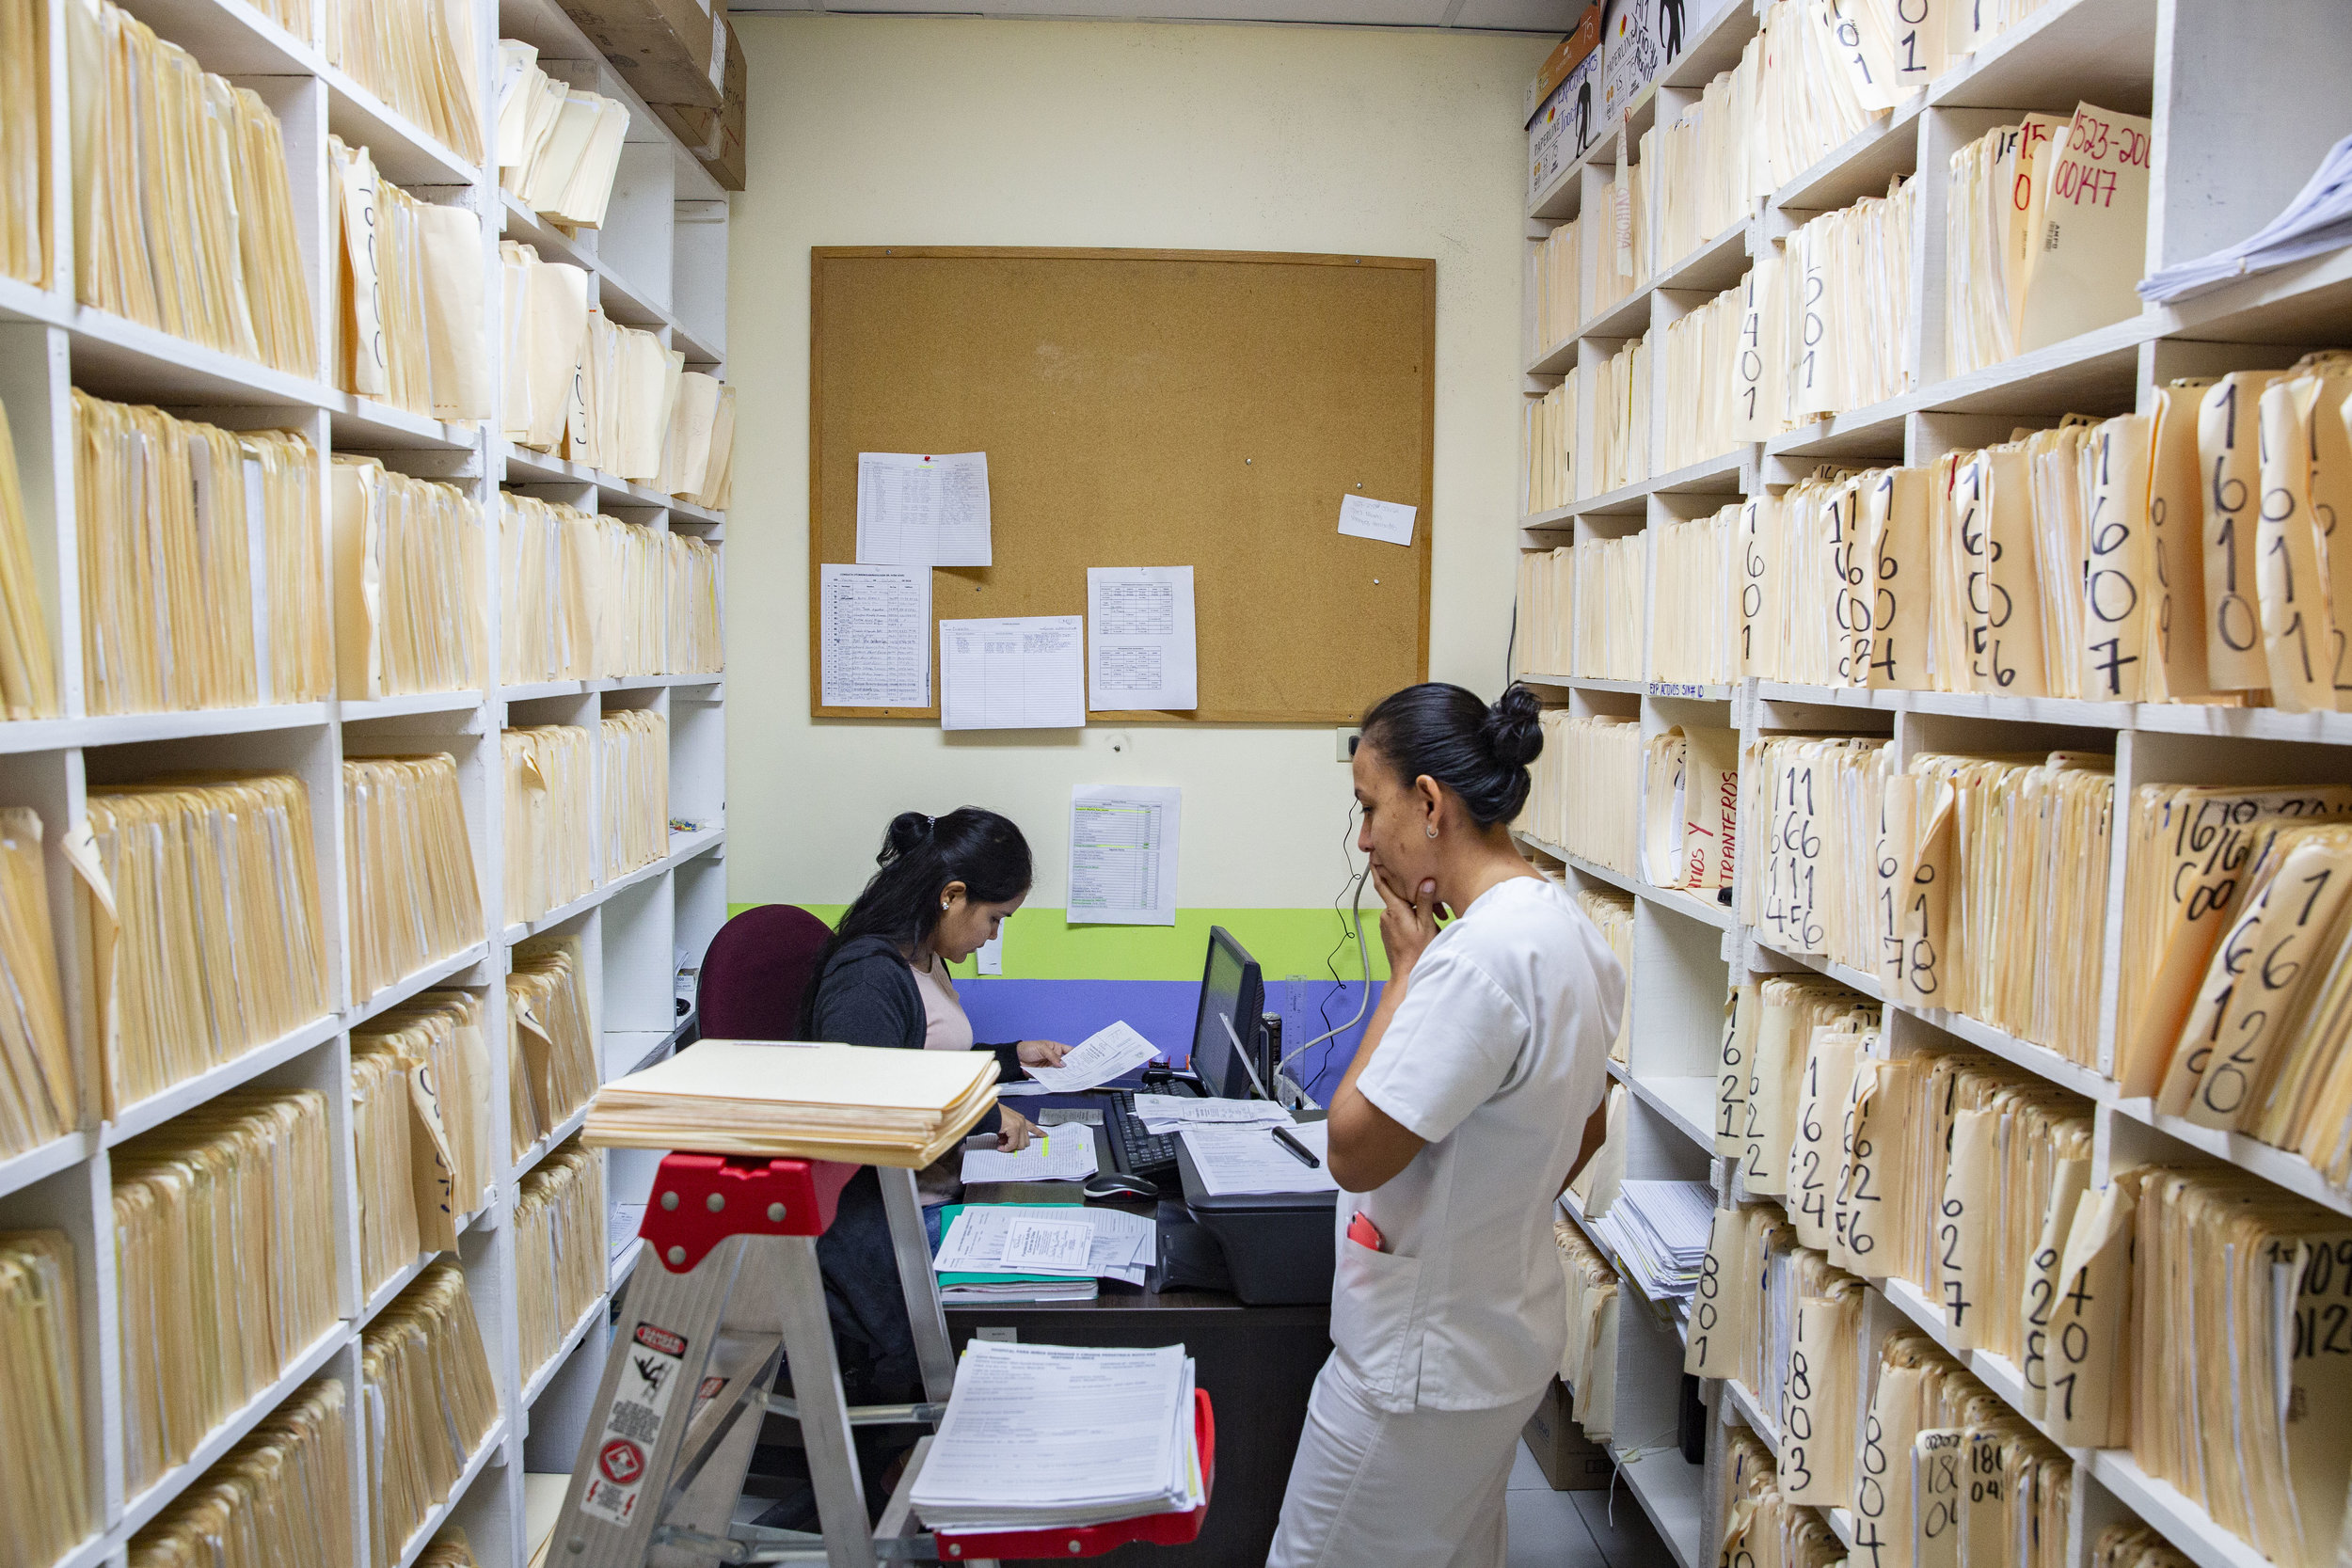 Archives inside the Ruth Paz hospital in San Pedro Sula, Honduras.